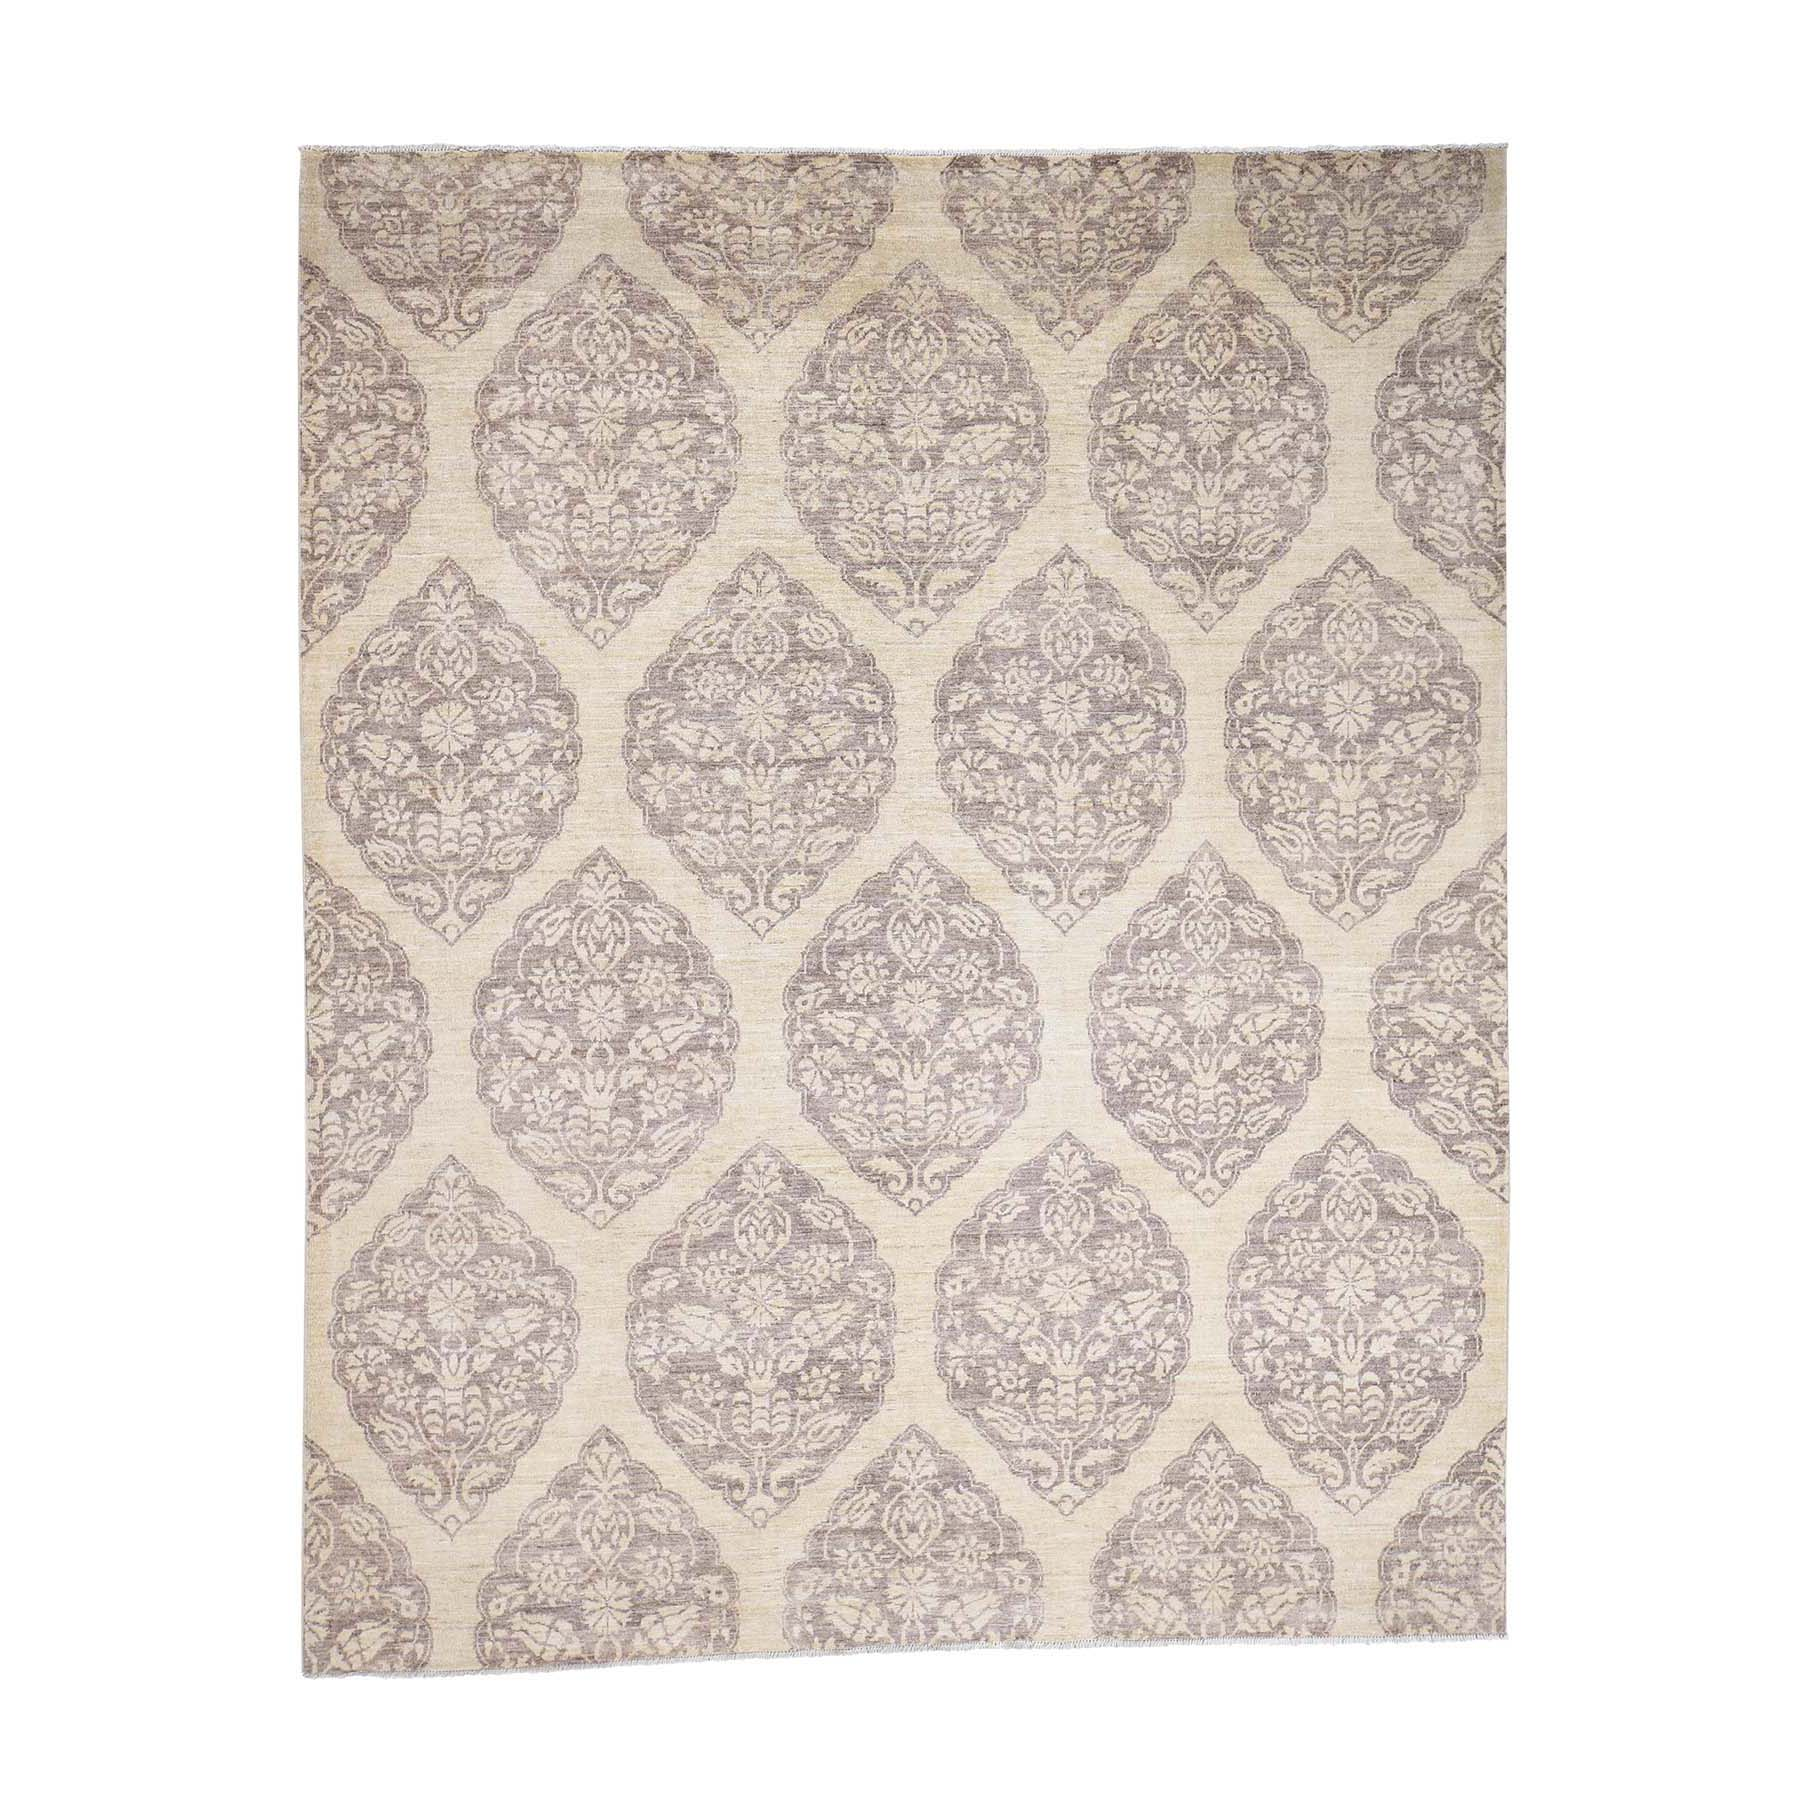 Agra And Turkish Collection Hand Knotted Beige Rug No: 0178670